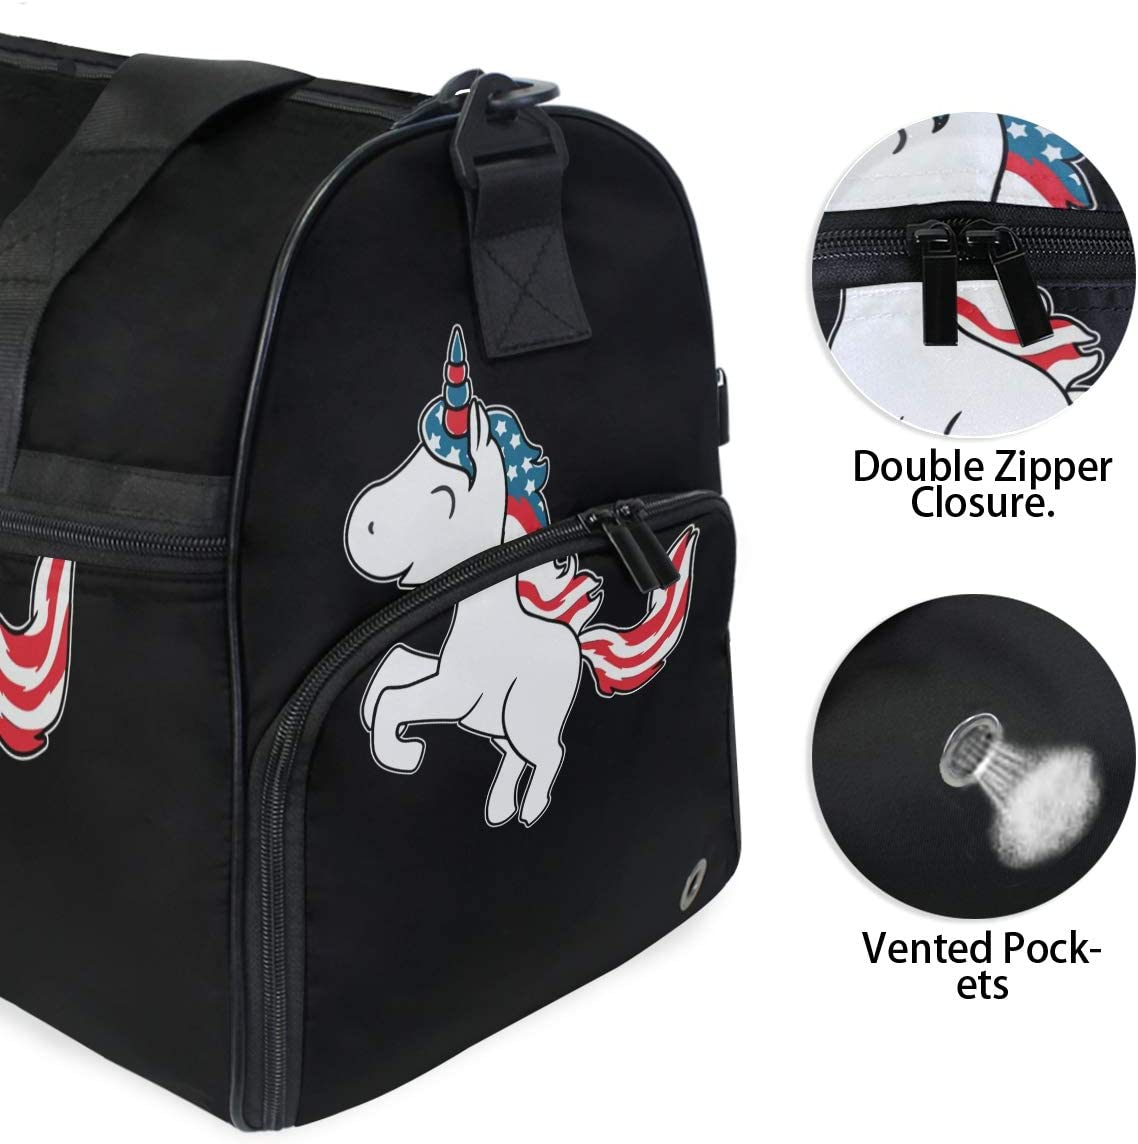 Americon Unicorn American Sports Gym Bag with Shoes Compartment Travel Duffel Bag for Men Women